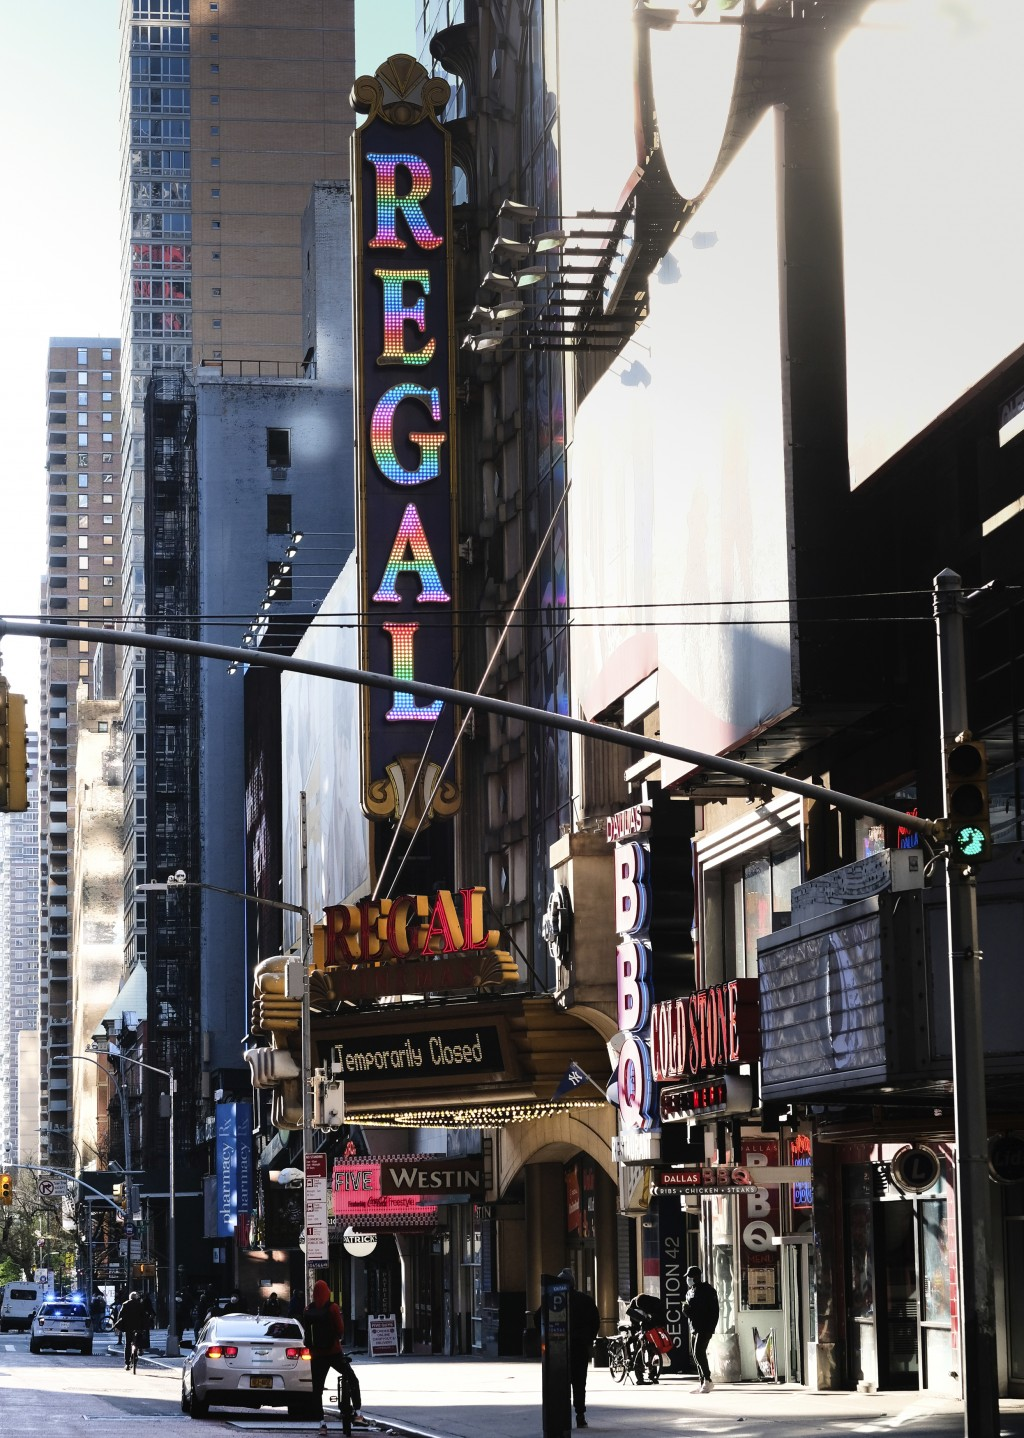 FILE - The Regal E-Walk movie theater is closed during the city lockdown due to the pandemic in New York on May 13, 2020. Regal movie theaters have be...